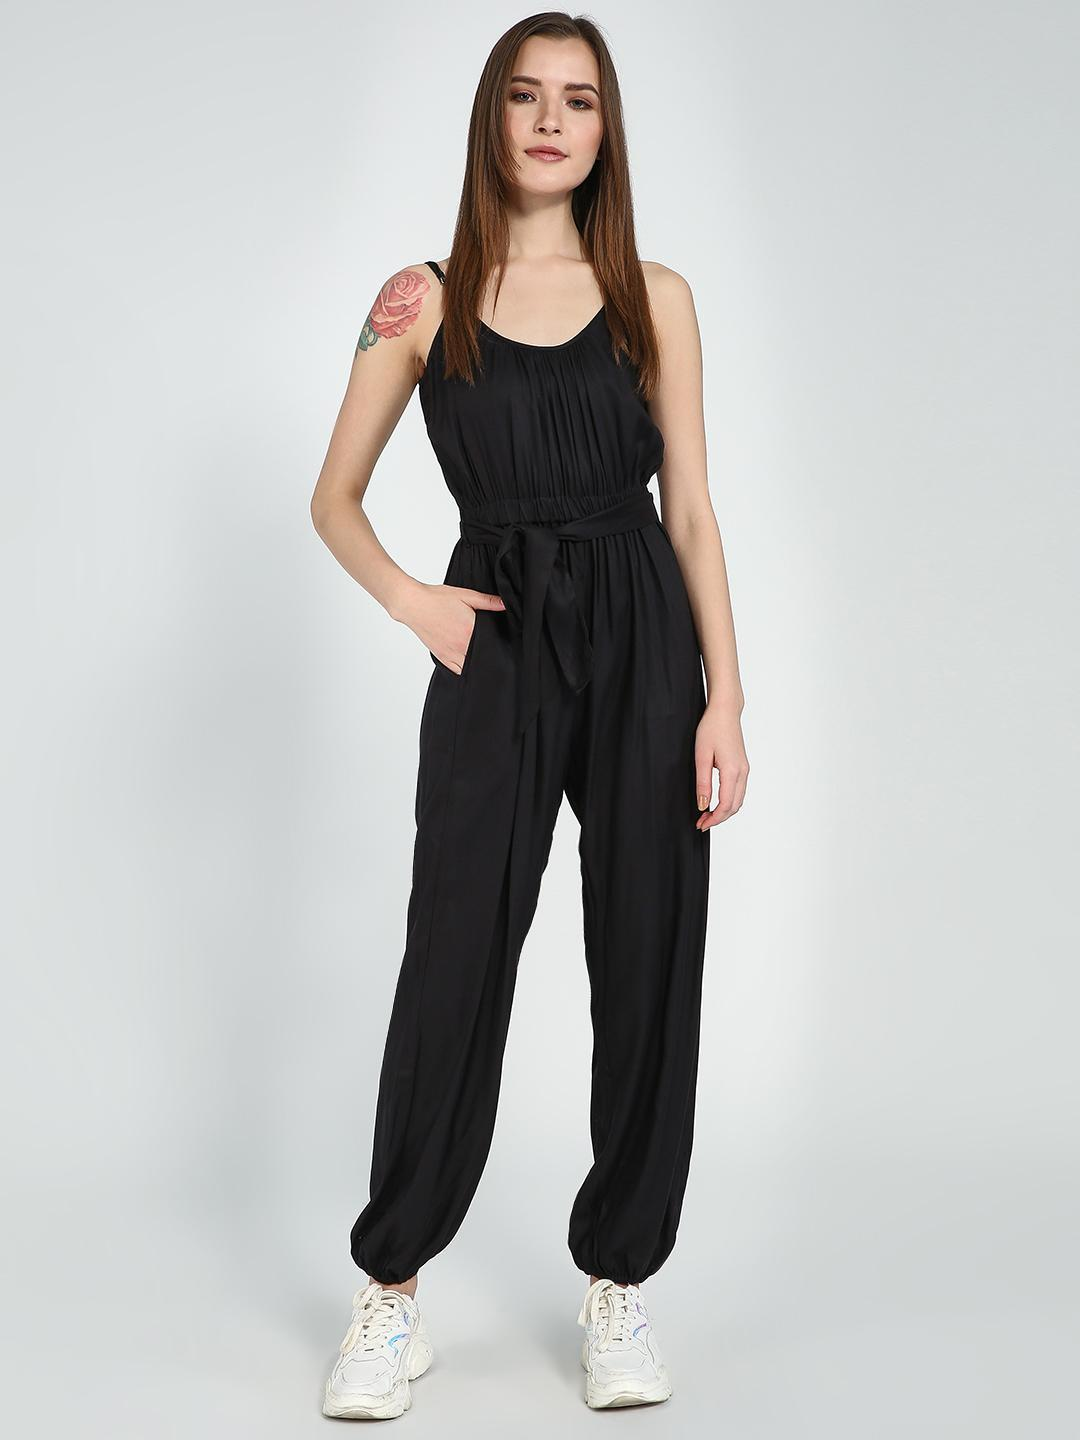 Femella Black Basic Sleeveless Jumpsuit 1